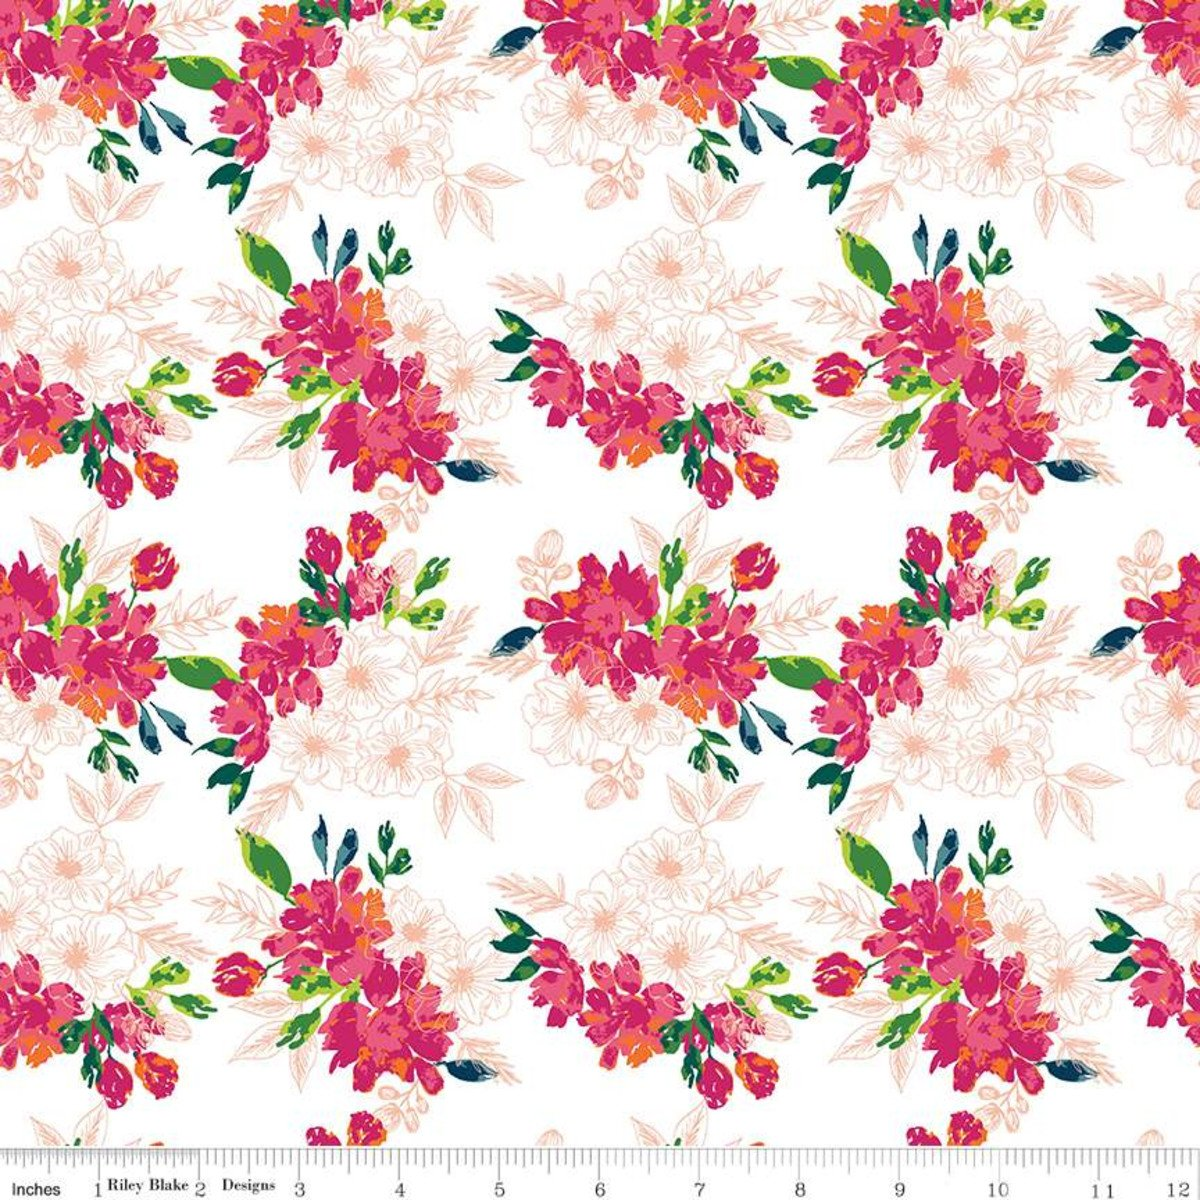 Garden Party Flower Bed Cream Fabric by Riley Blake